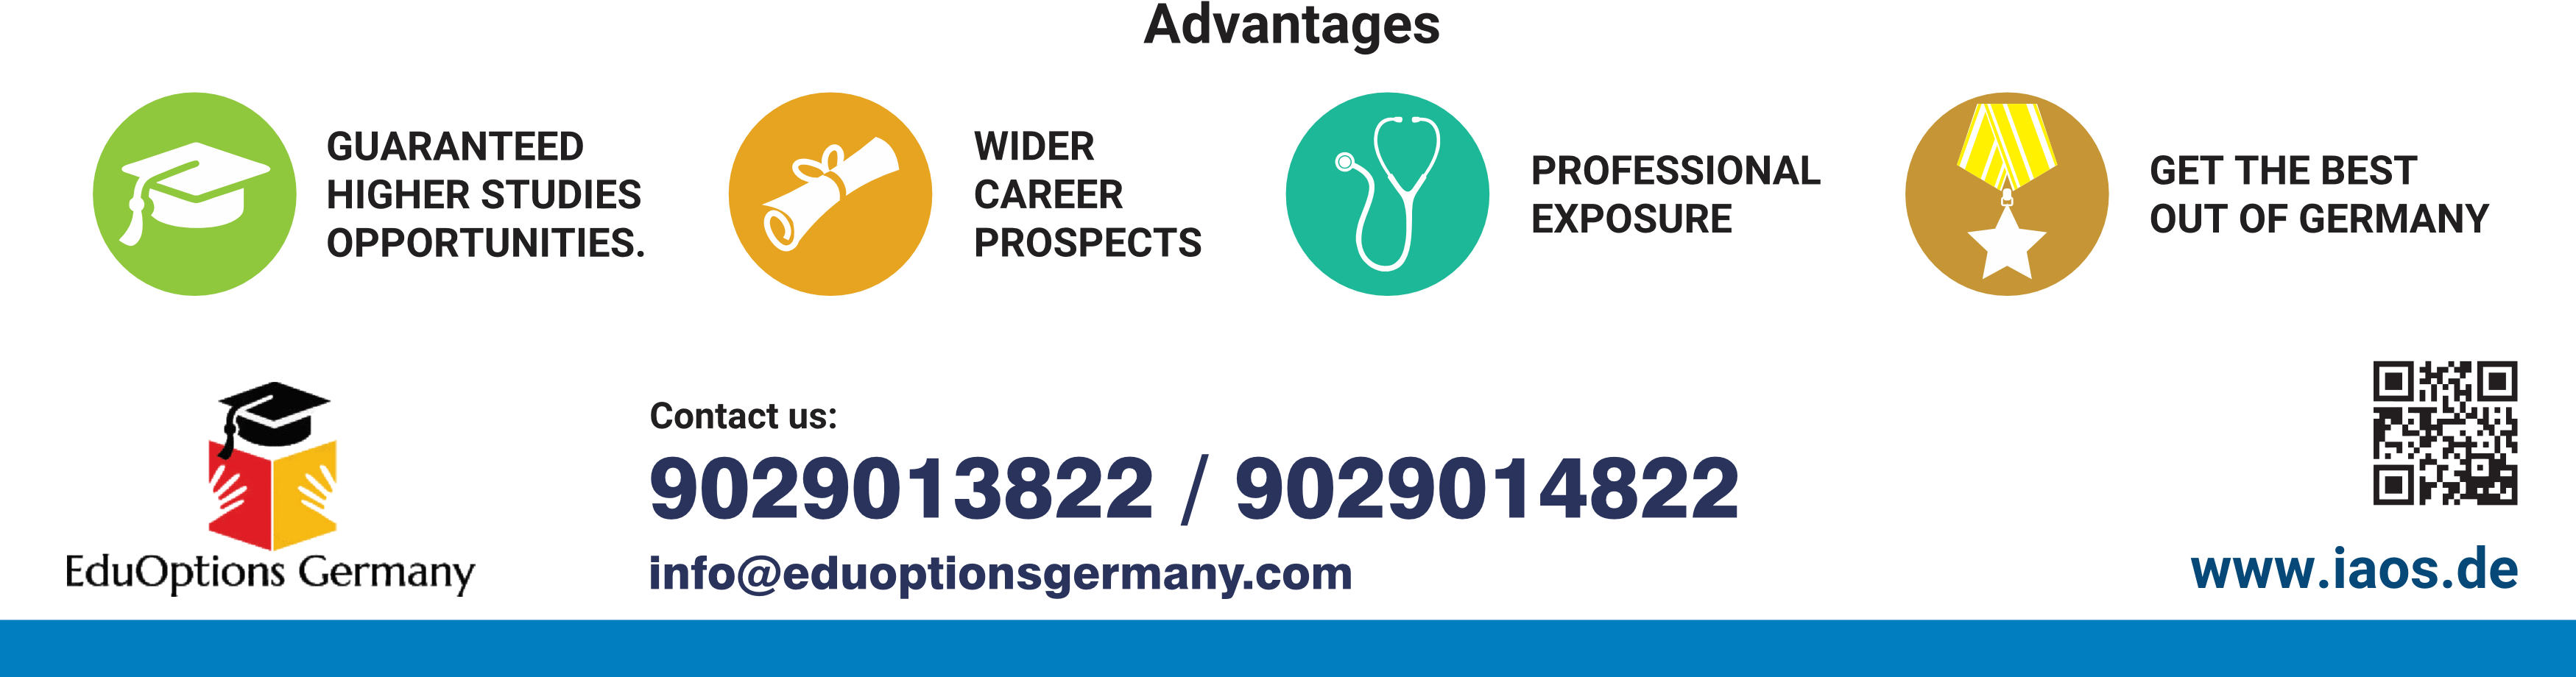 MBBS in Germany,md in germany,specialisation in Germany,indian doctors in Germany